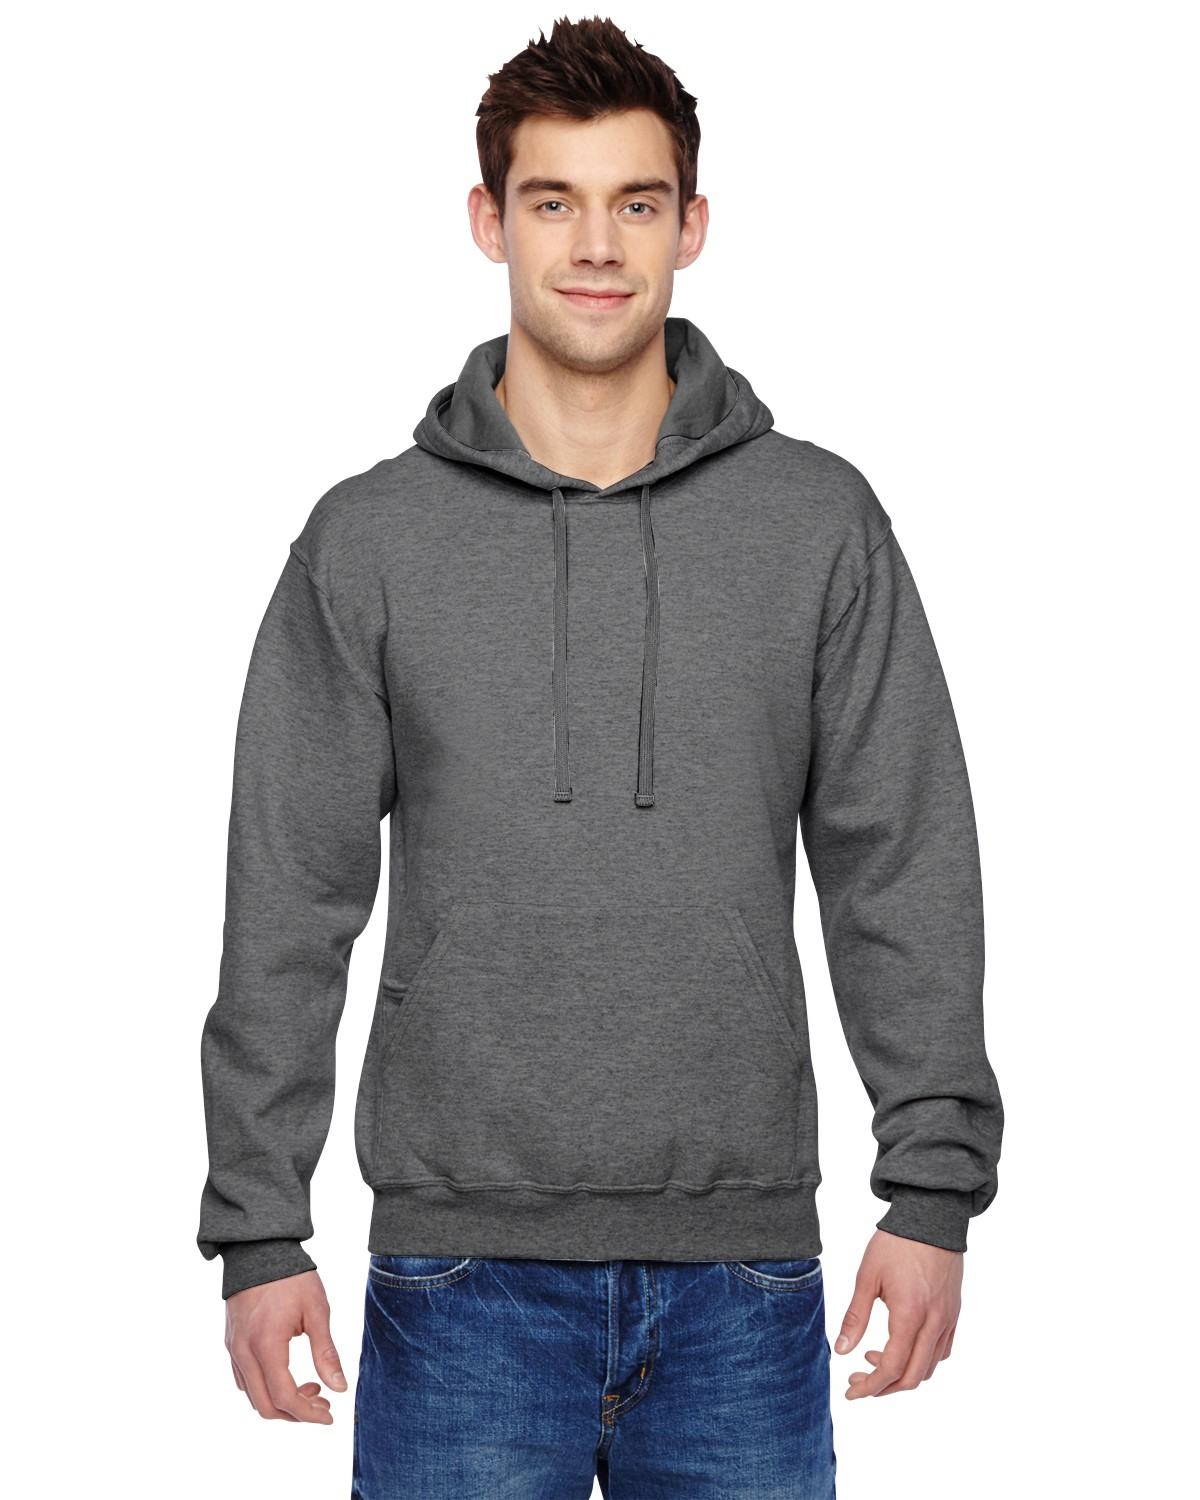 SF76R Fruit of the Loom CHARCOAL HEATHER